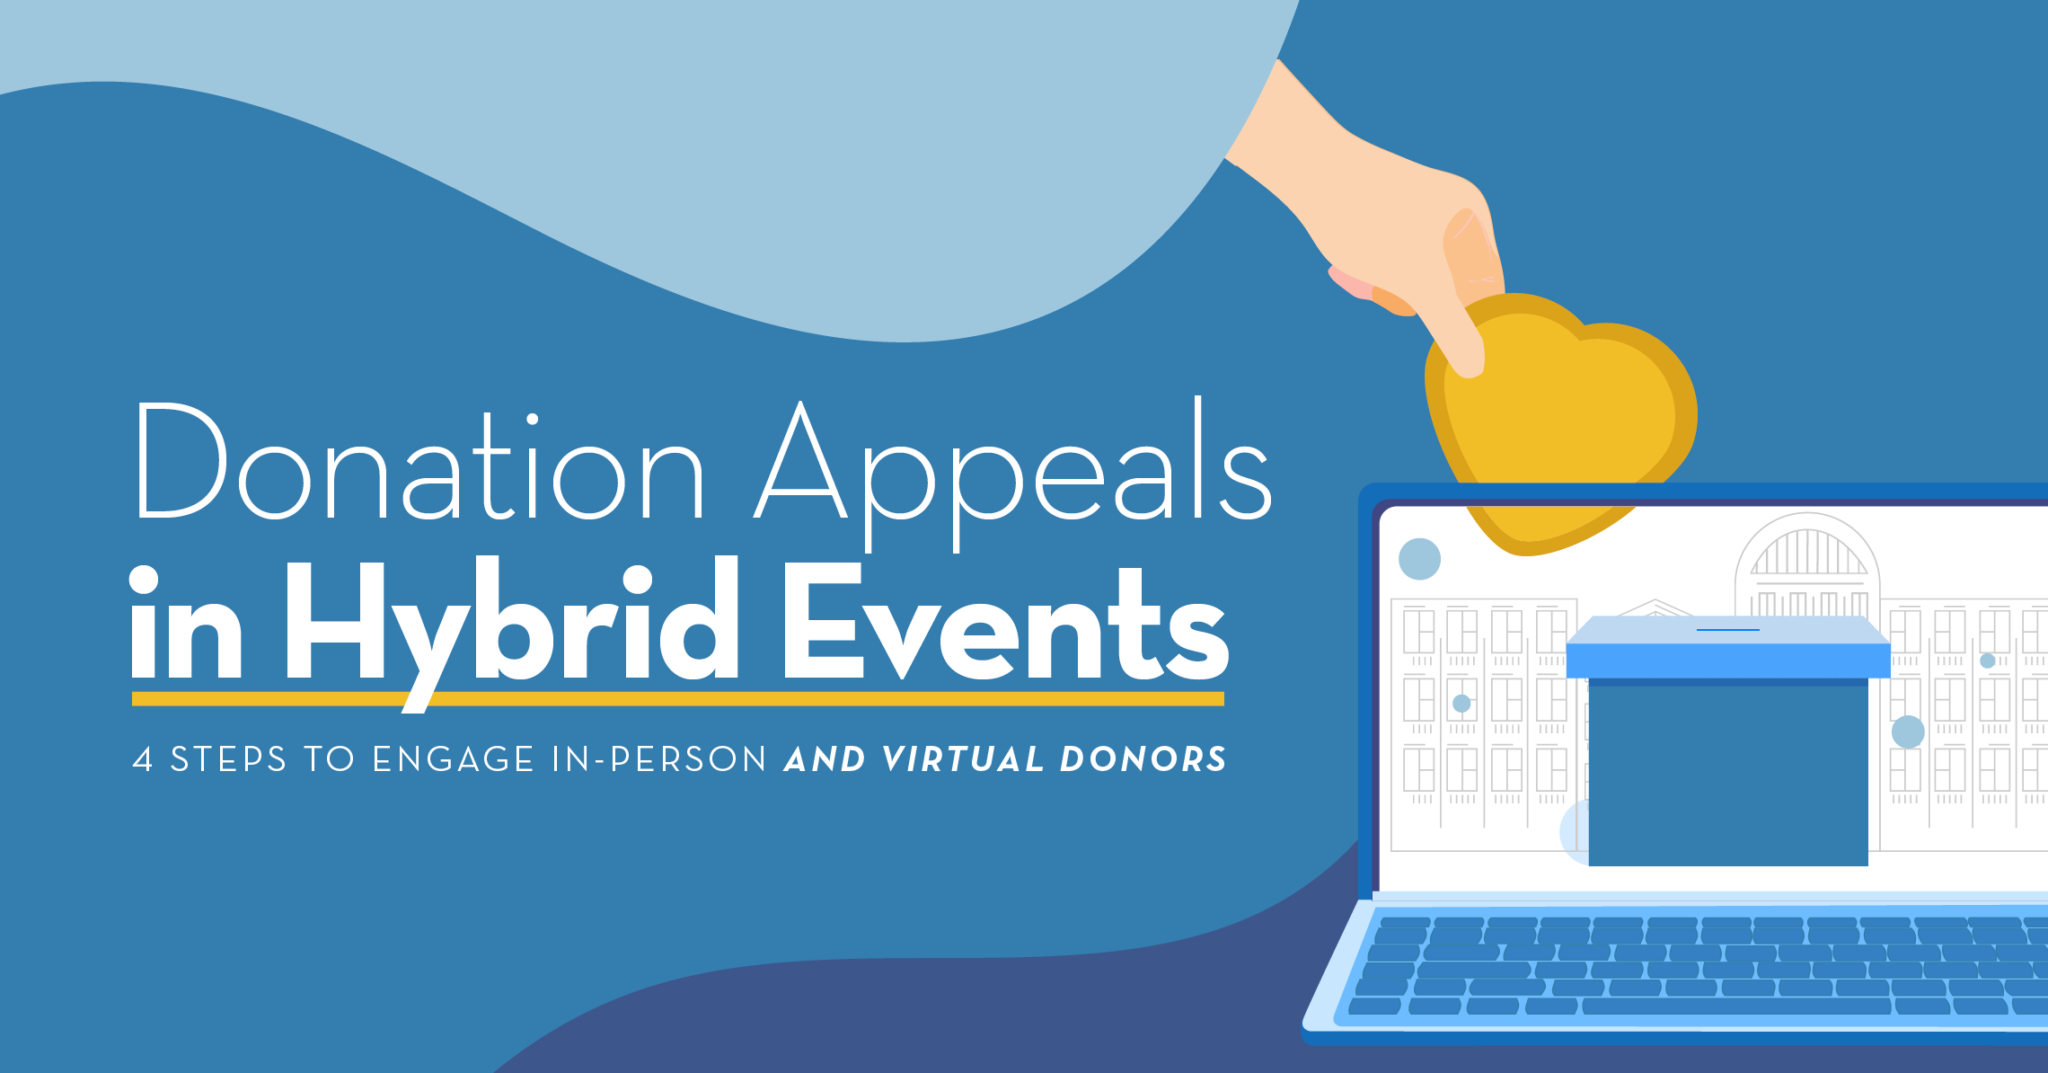 Donation-Appeals-in-Hybrid-Events-4-Steps